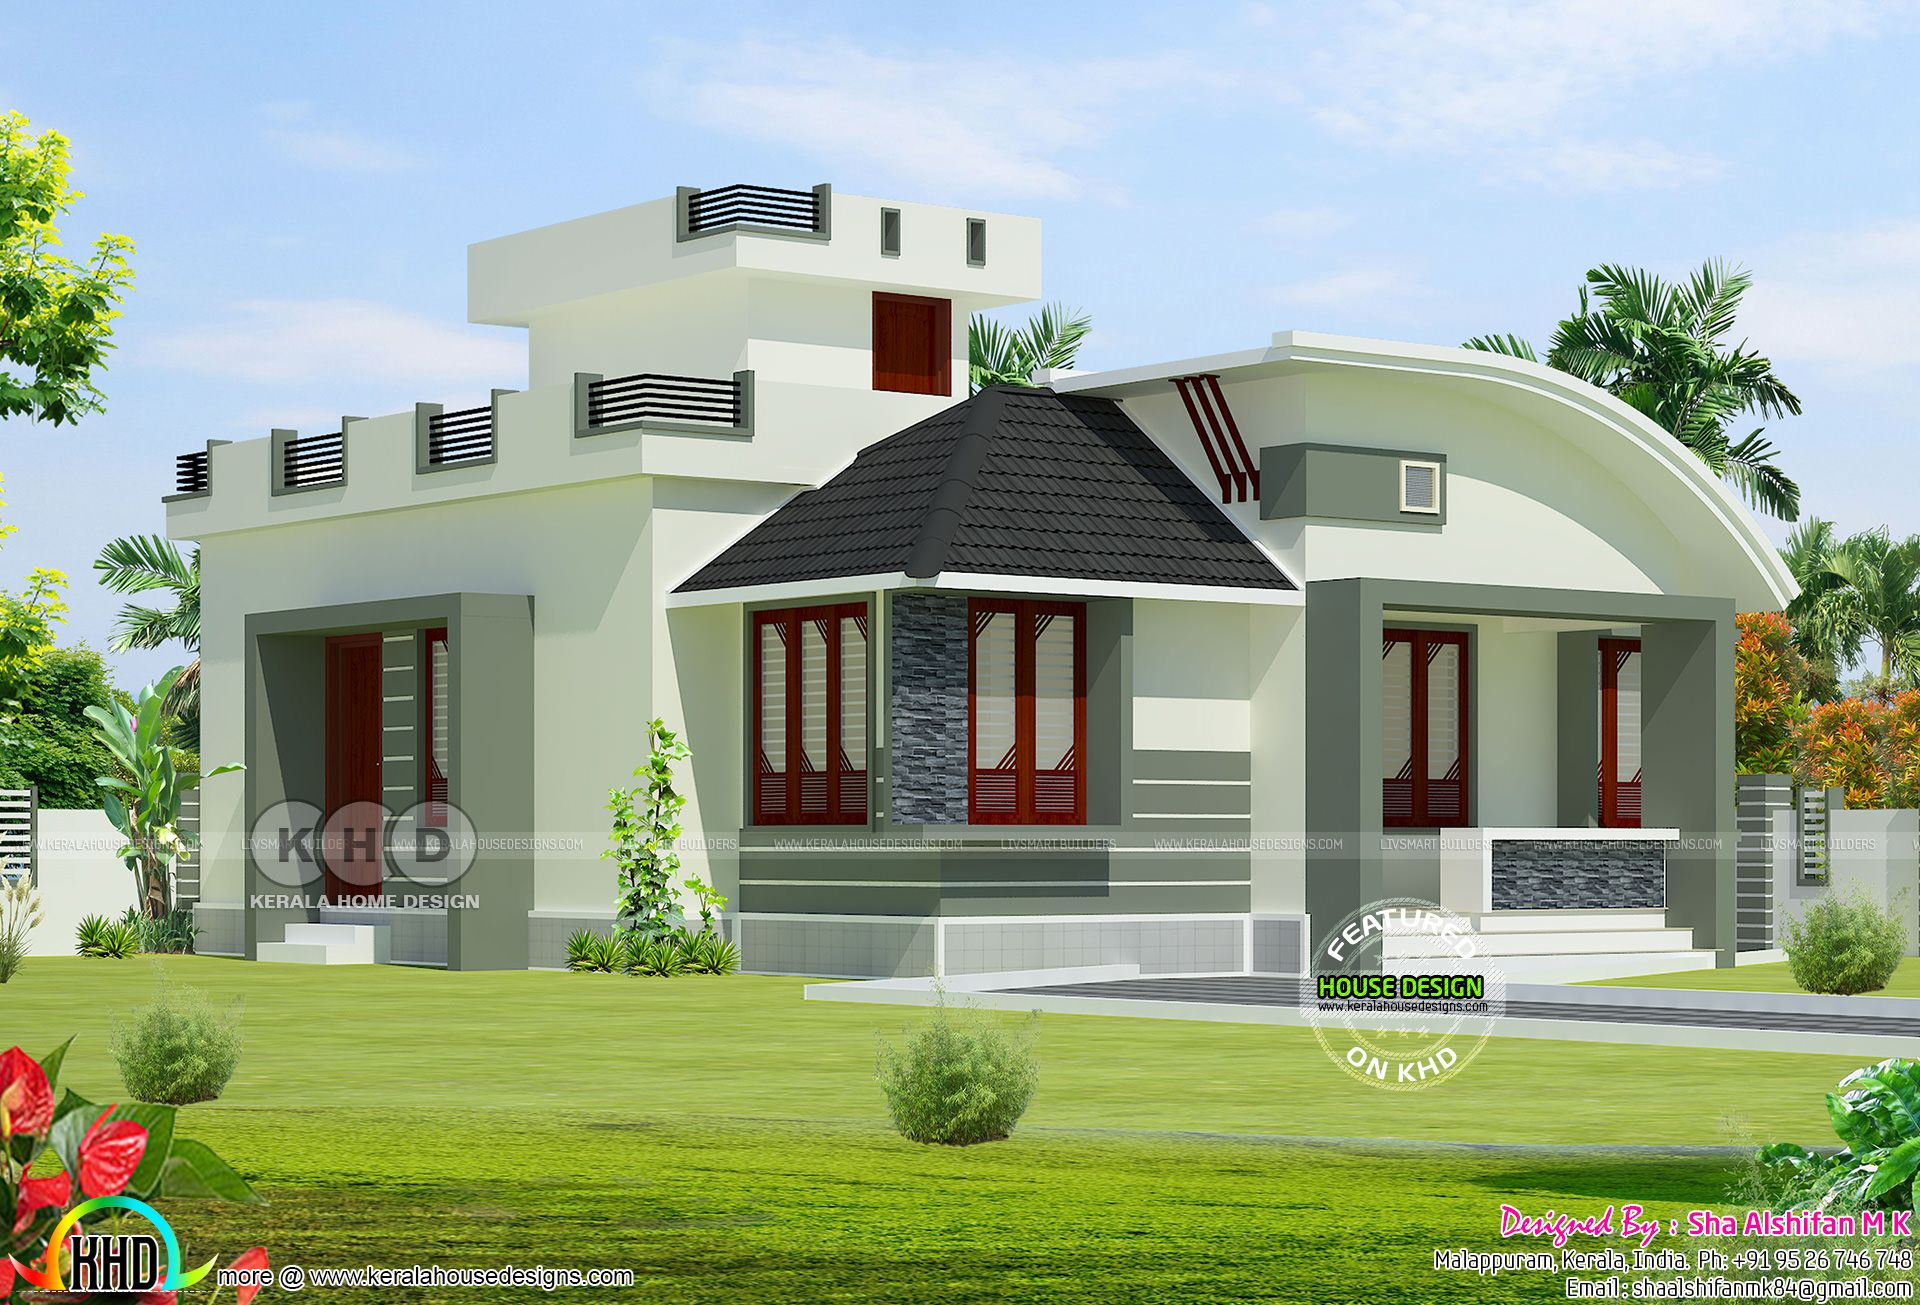 Related image | Low cost house plans, Building design ...